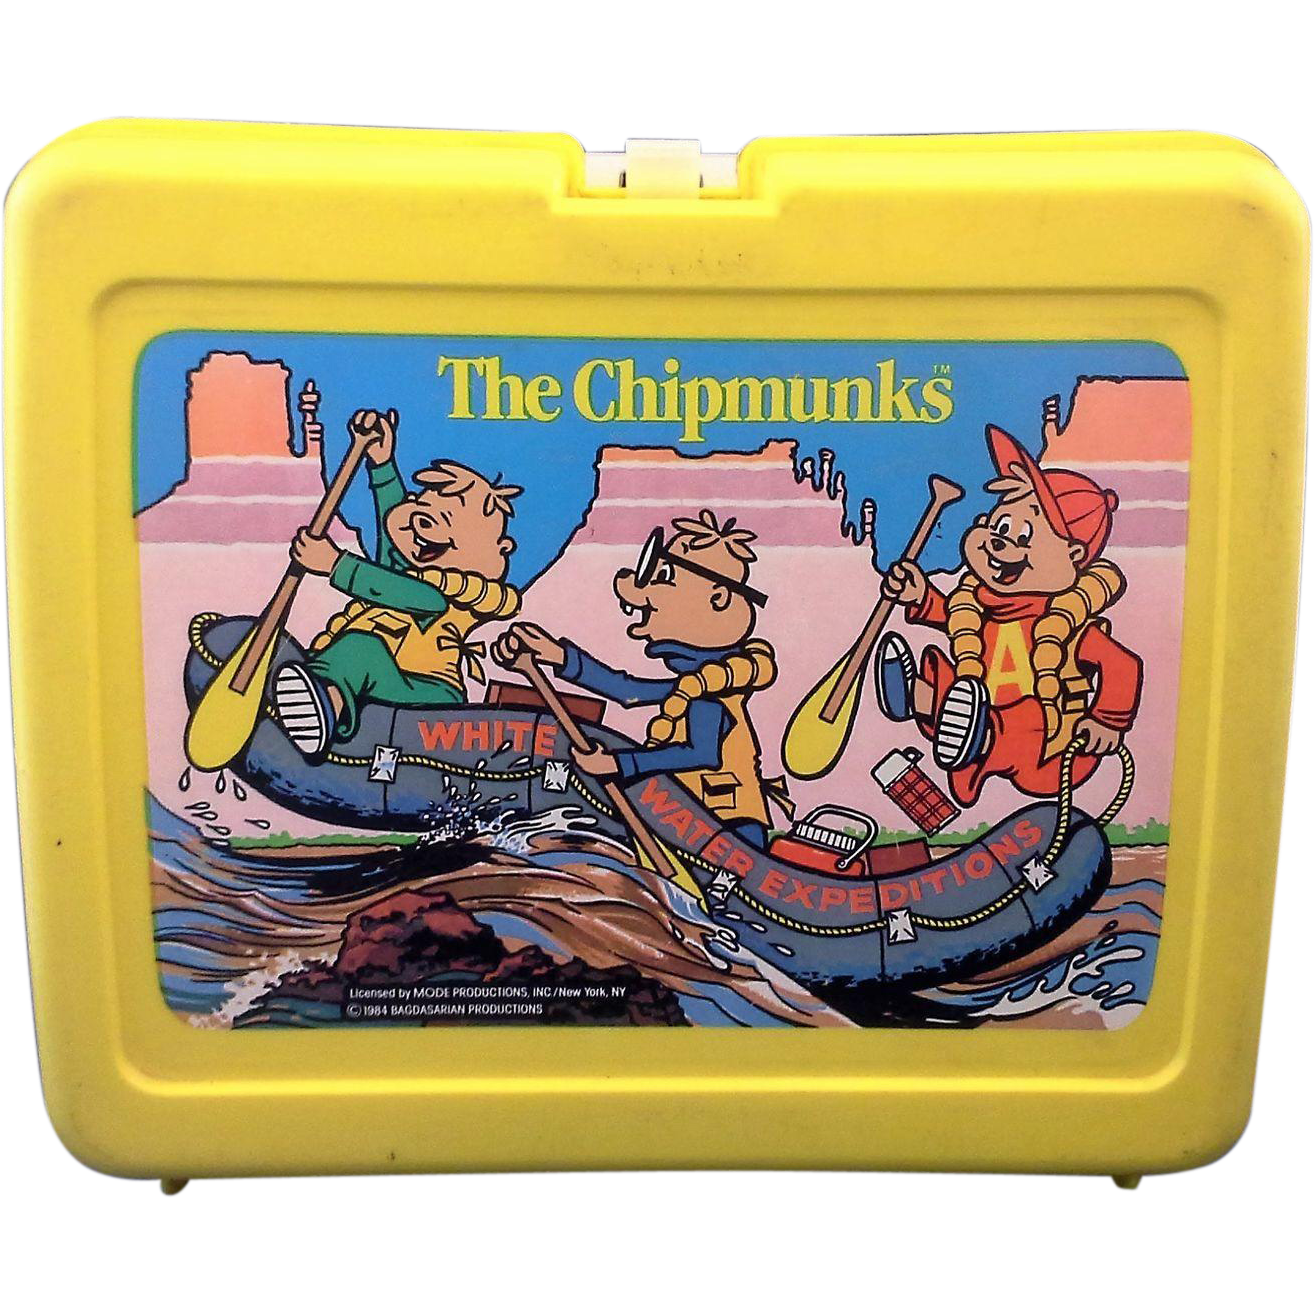 Alvin And The Chipmunks Yellow Plastic Lunchbox 1984 Alvin And The Chipmunks Chipmunks Lunch Box